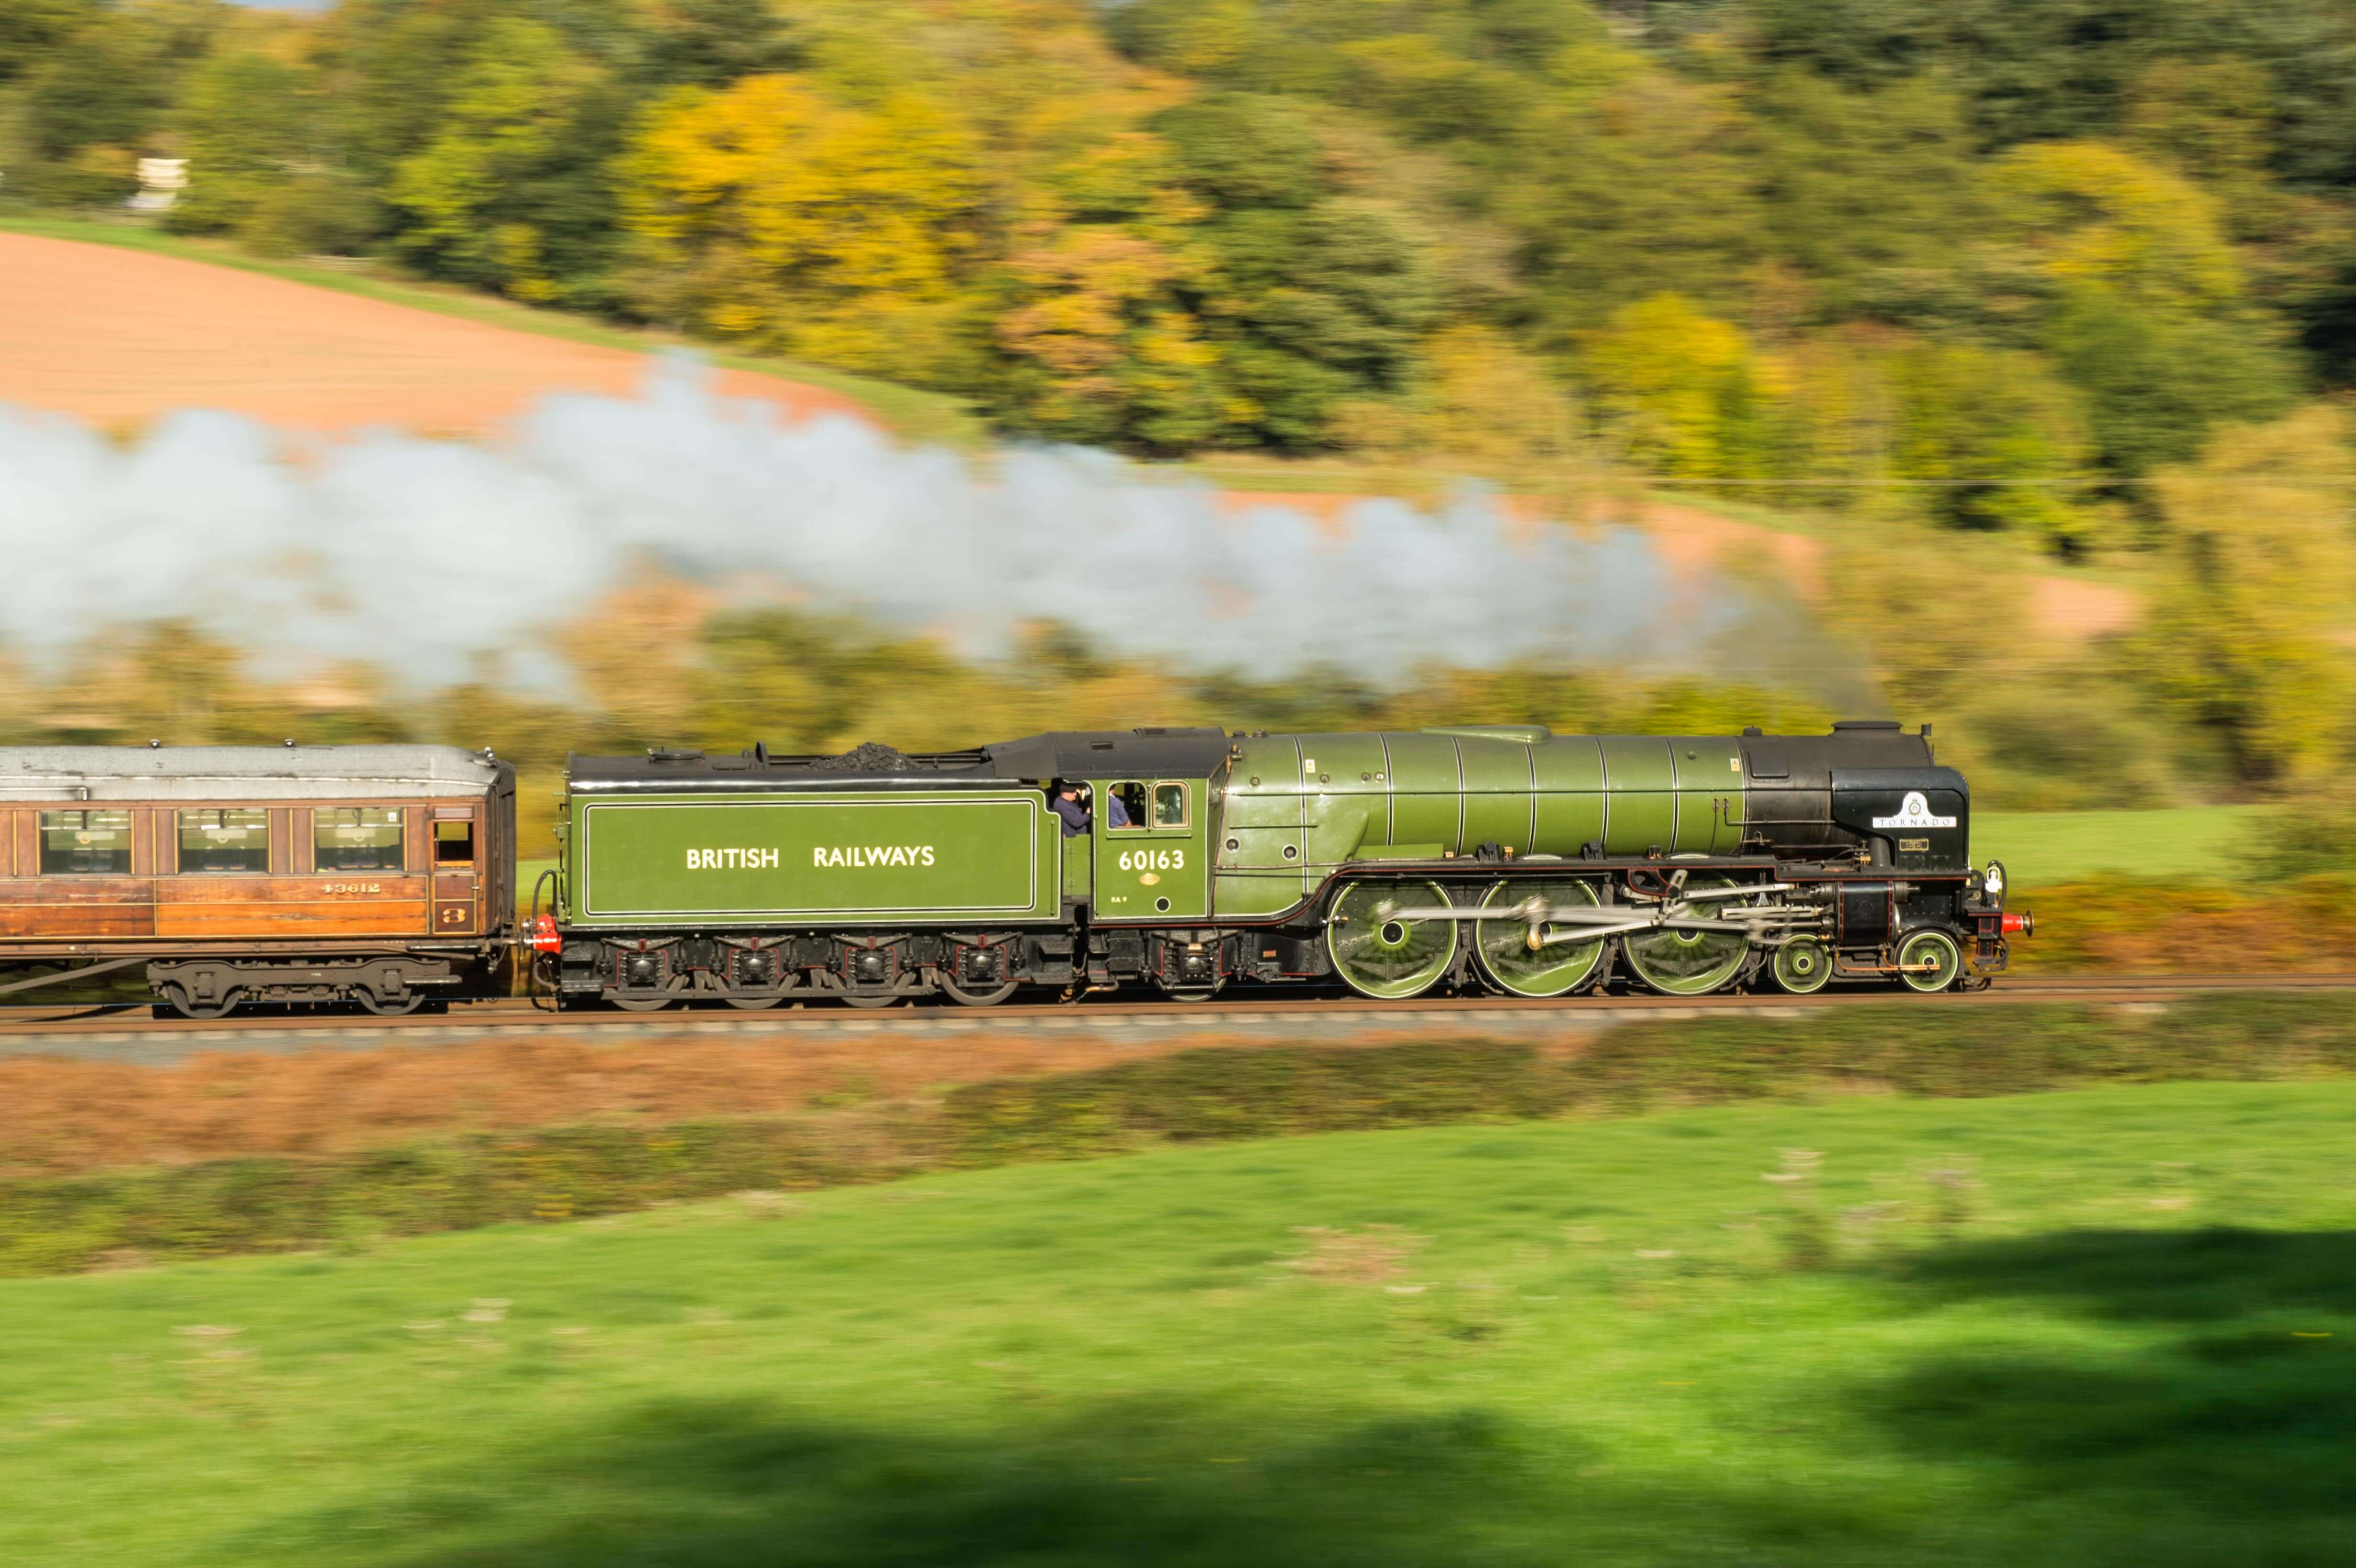 A1 Peppercorn No. 60163 Tornado is captured at speed at 1/20th second on the Severn Valley Railway